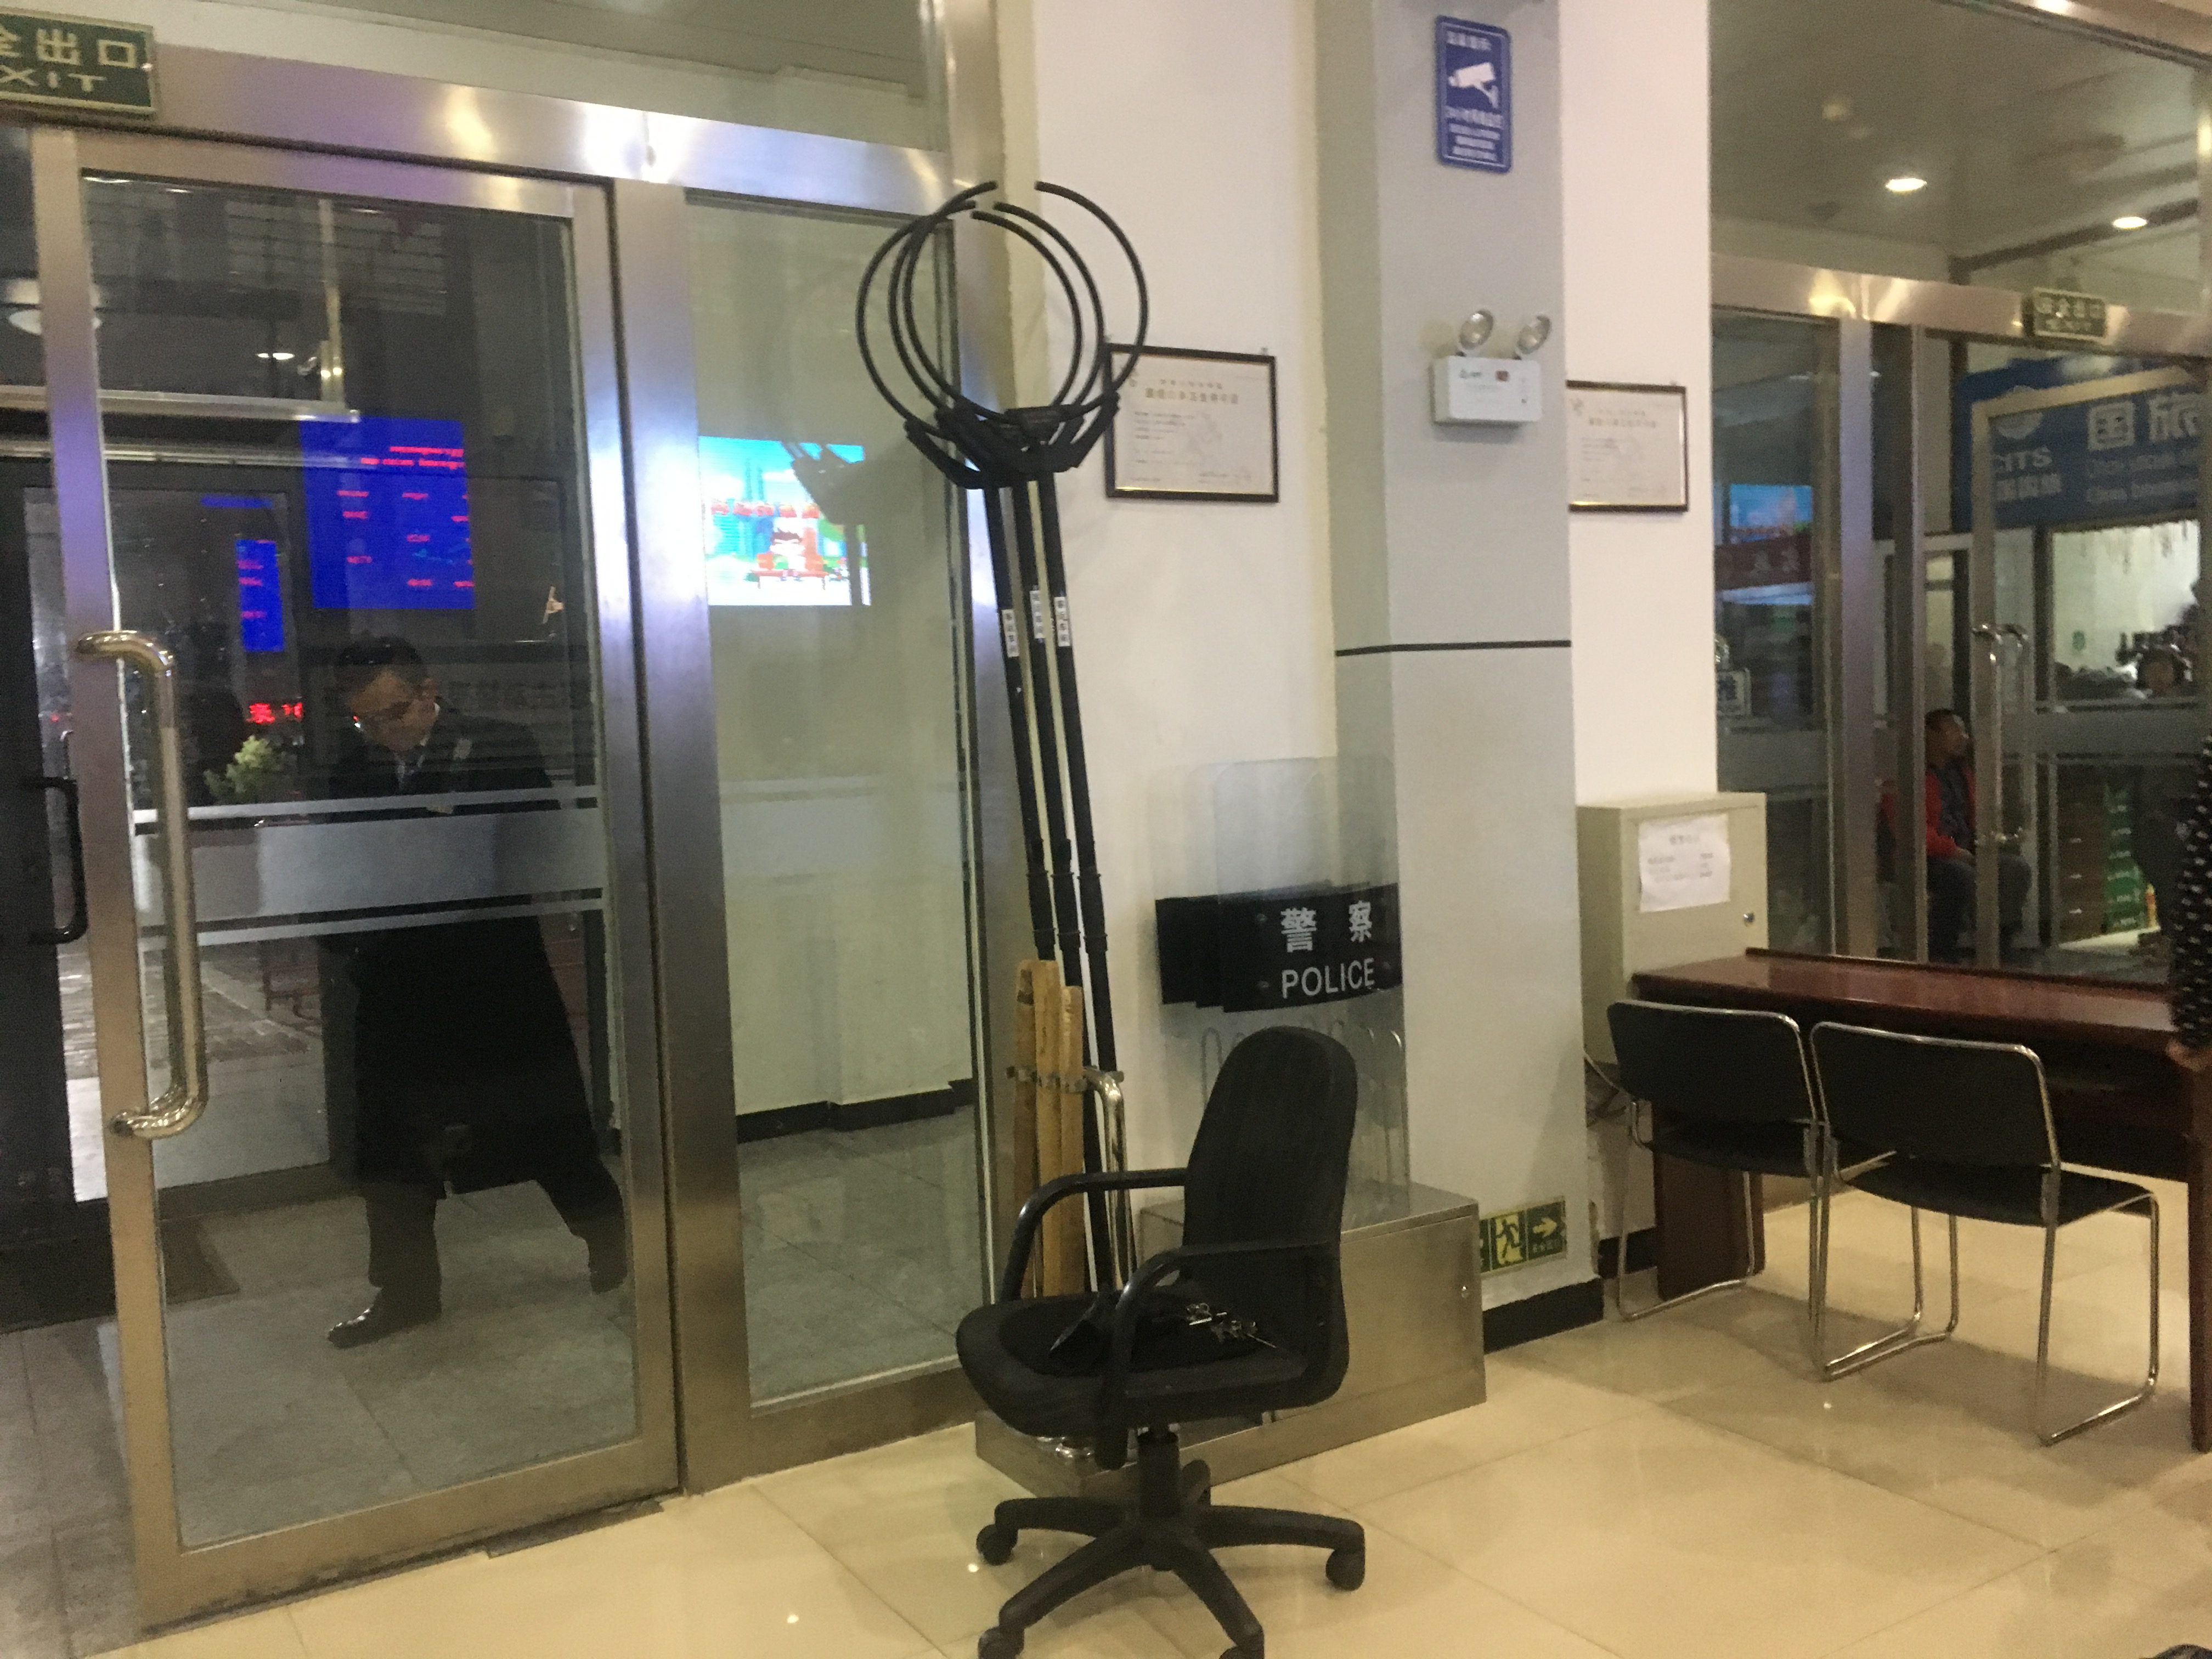 Chinese instruments of detention in Customs waiting hall